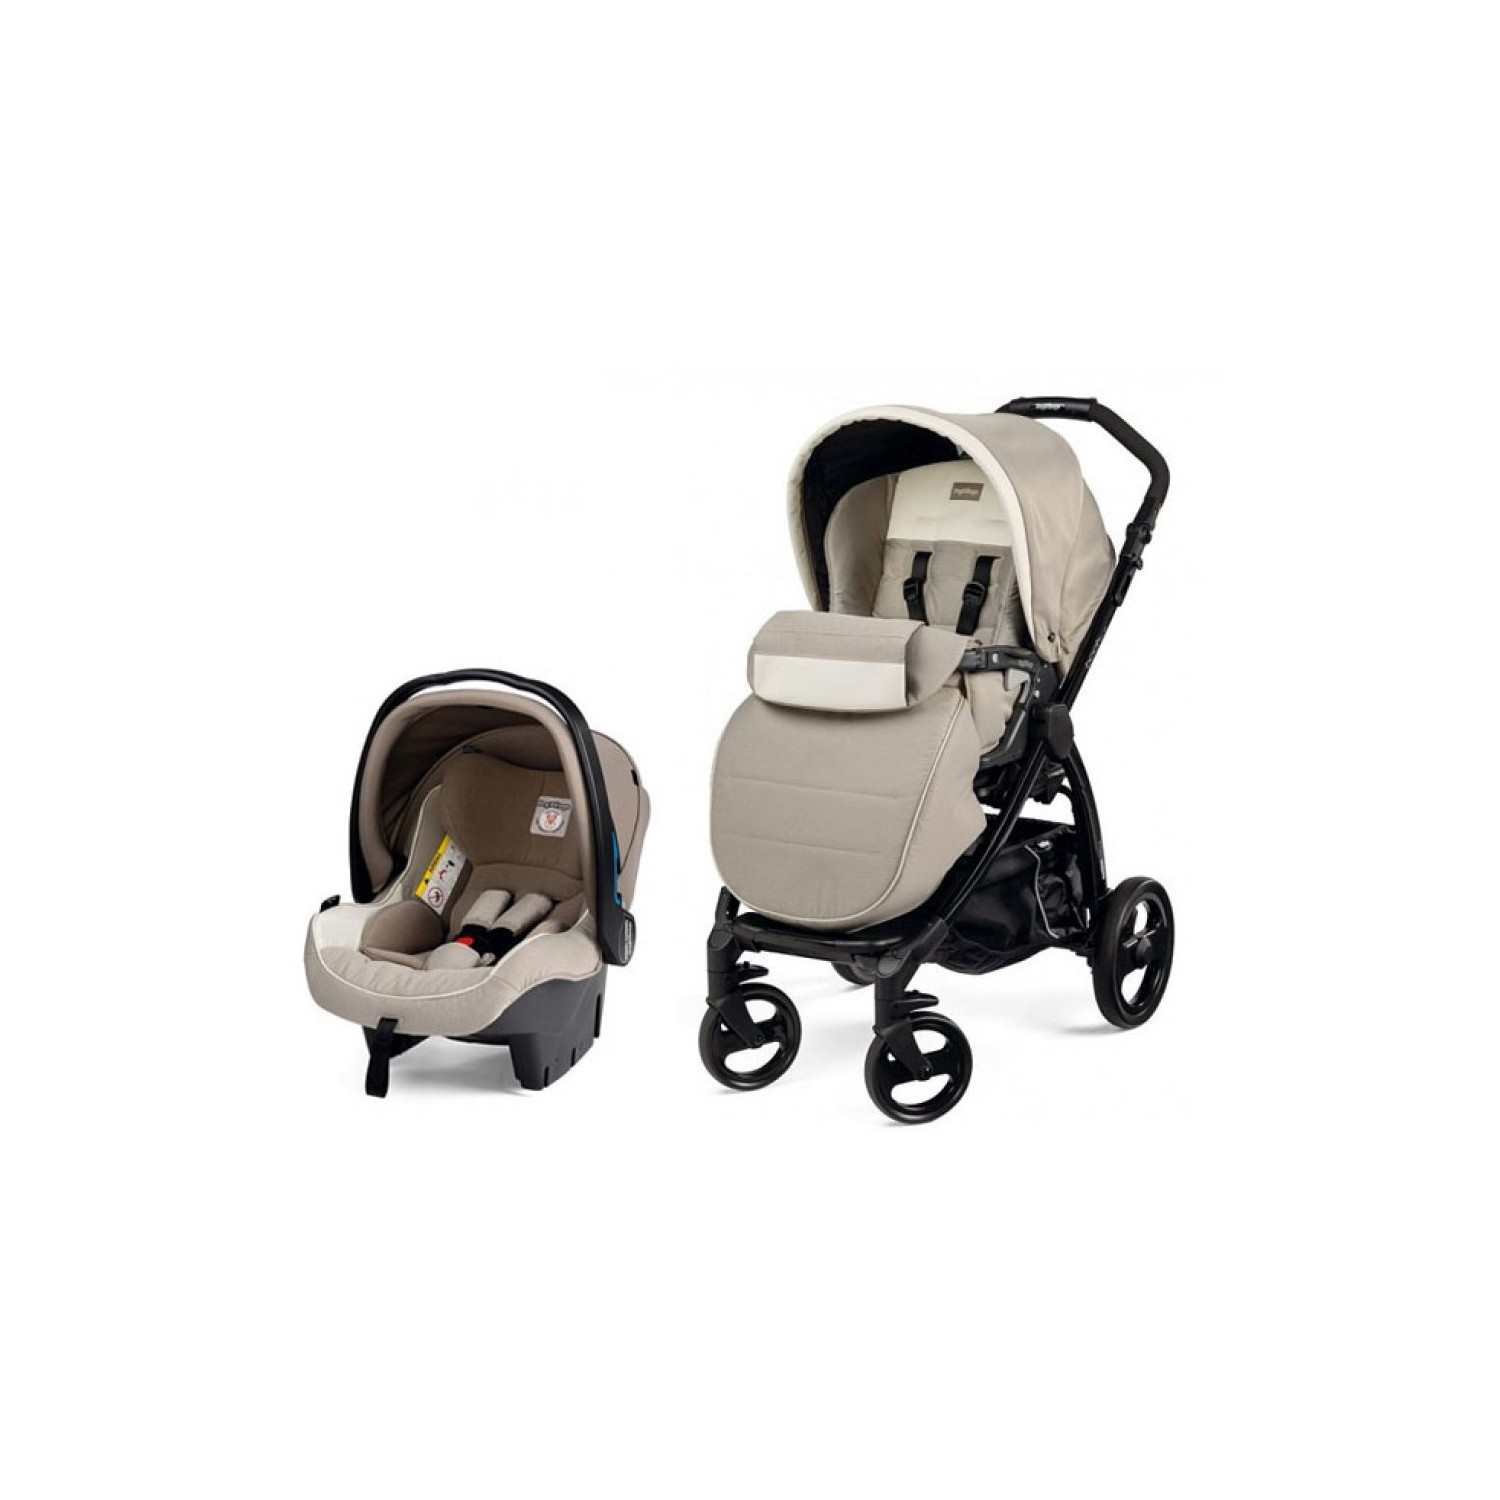 Peg Perego Book 51 Completo Yorum Peg Perego Book Plus 51 Completo Travel Sistem Bebek Arabası Avana